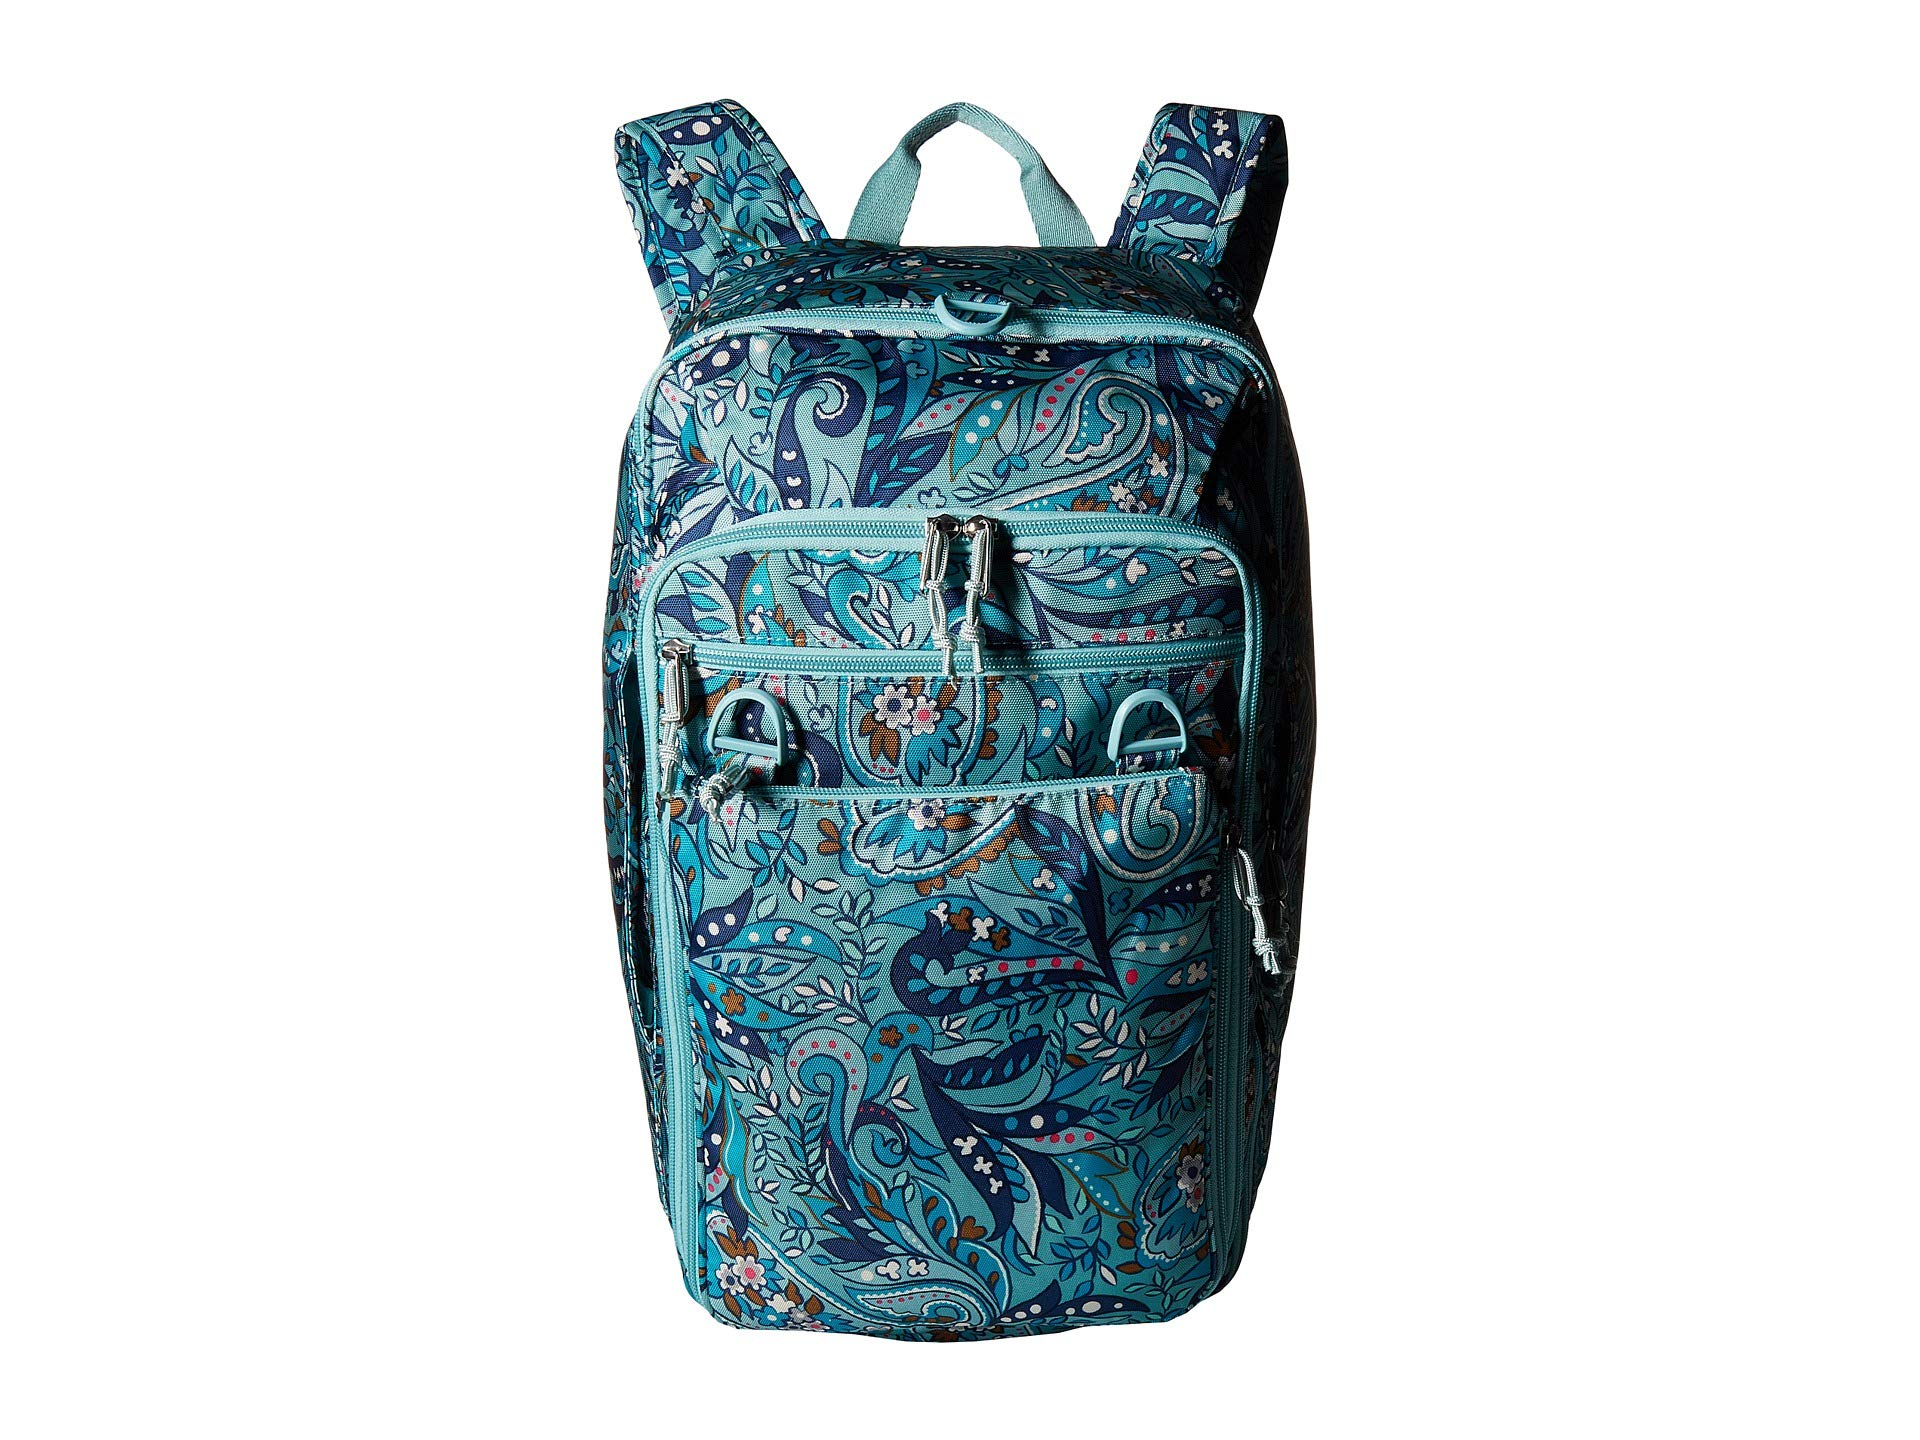 Bag Paisley Convertible Up Travel Vera Daisy Lighten Bradley wXq1xn6U7